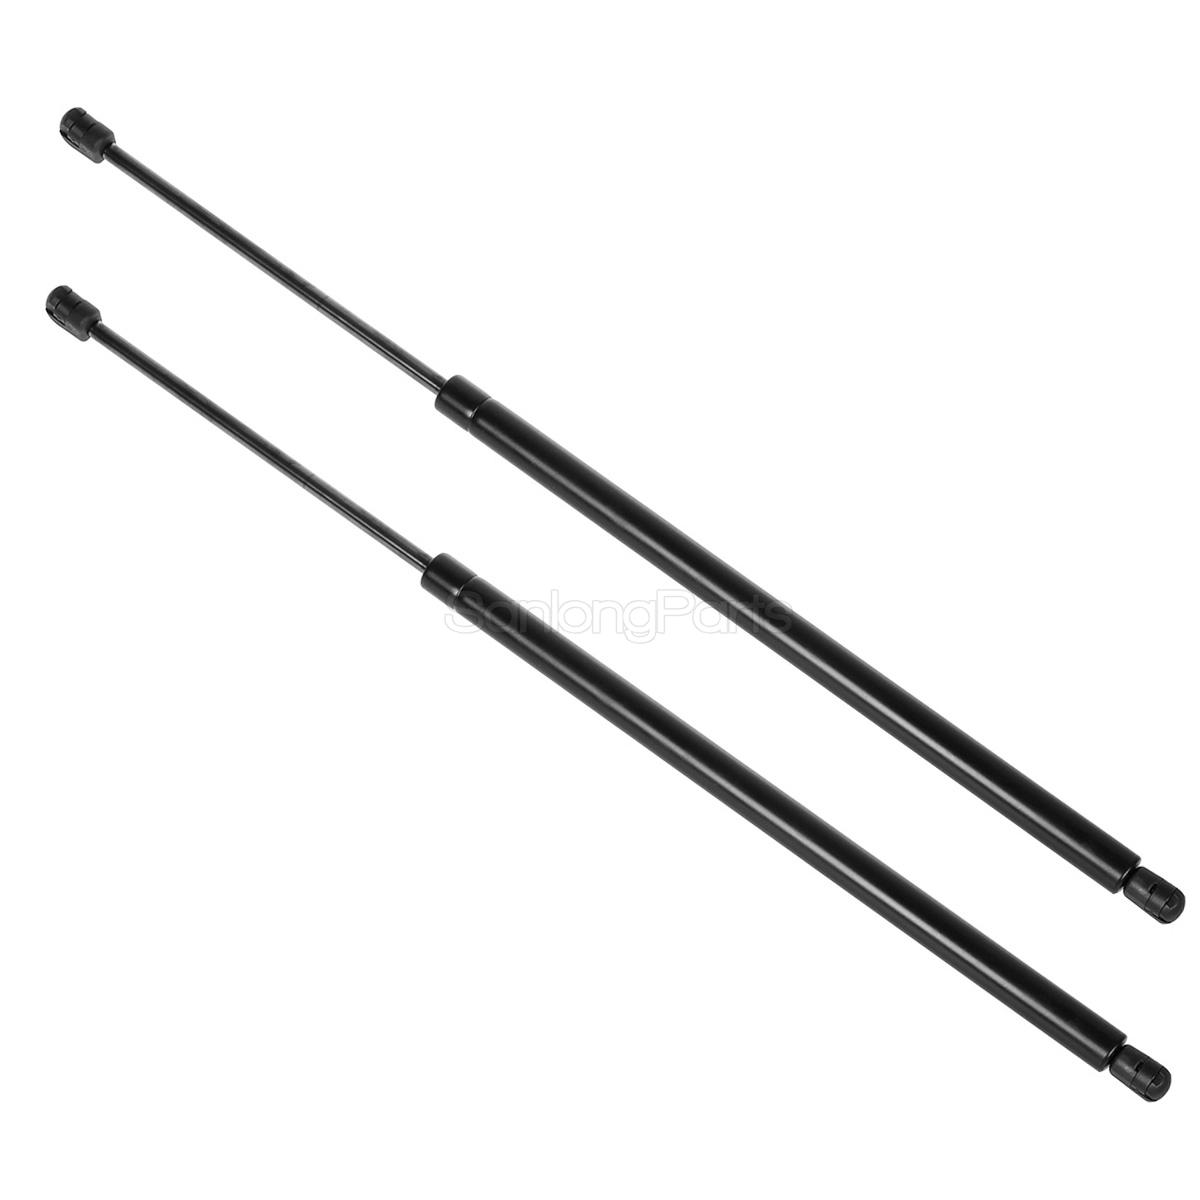 1Pair Rear Liftgate Hatch Lift Supports Shocks Struts For